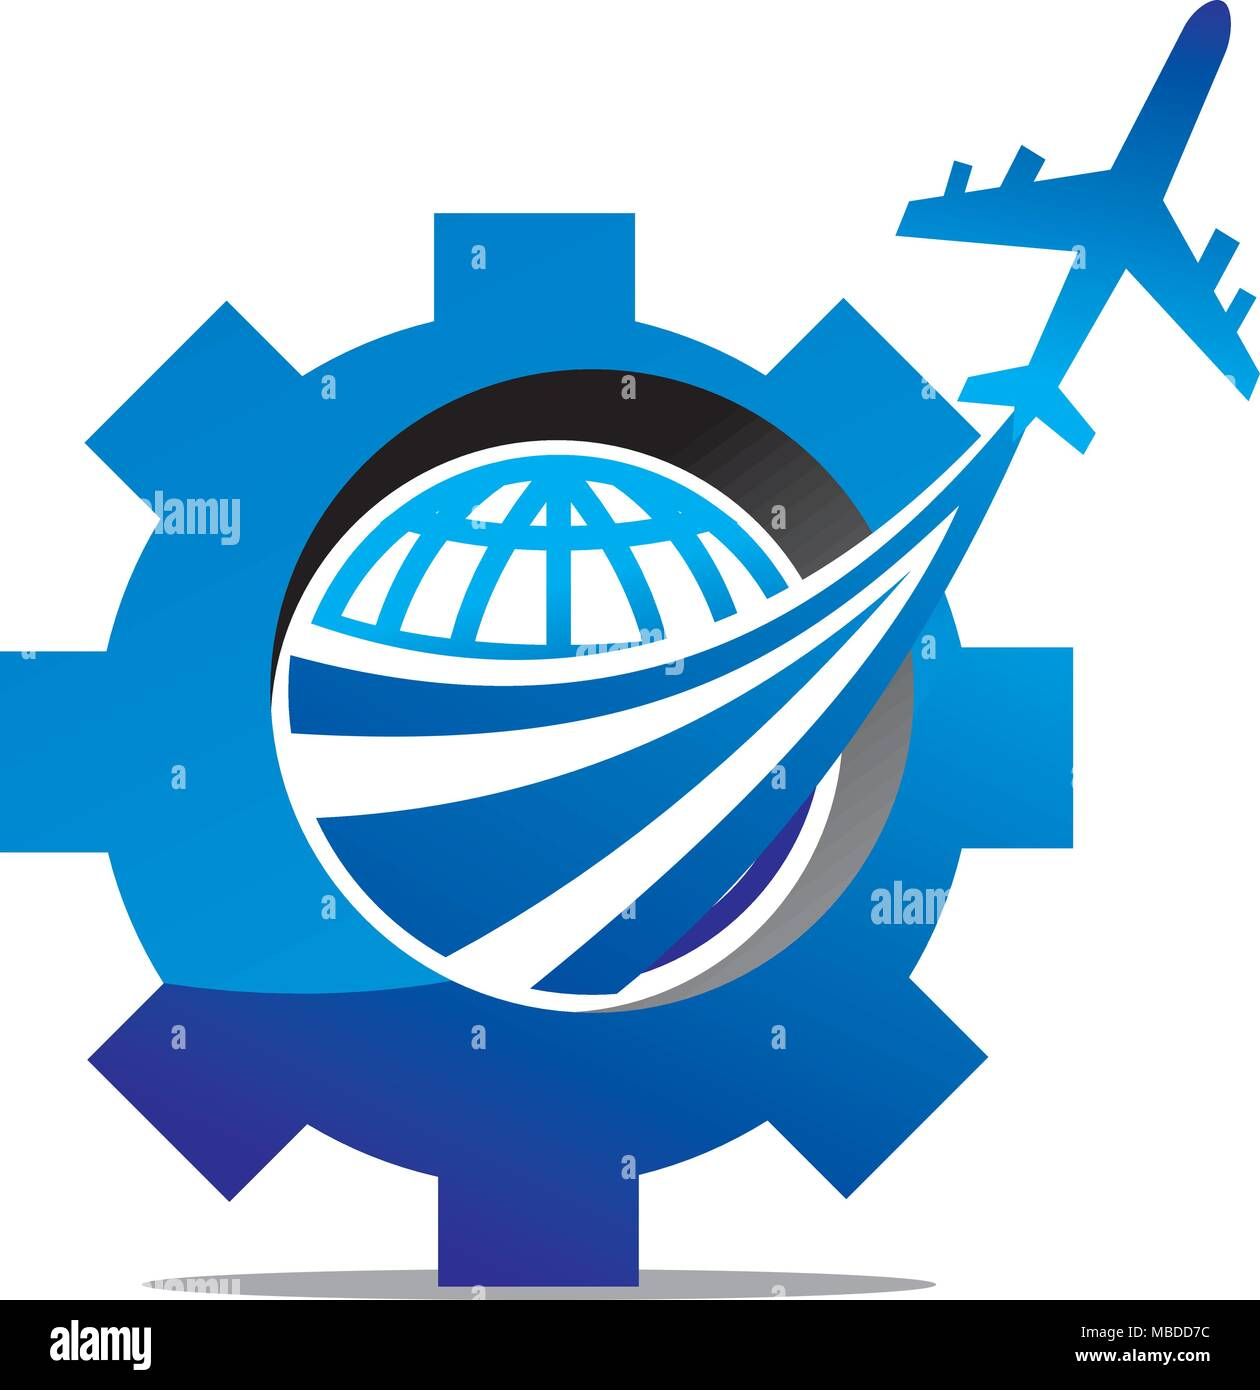 Aero Technology Logo Design Template Vector - Stock Vector